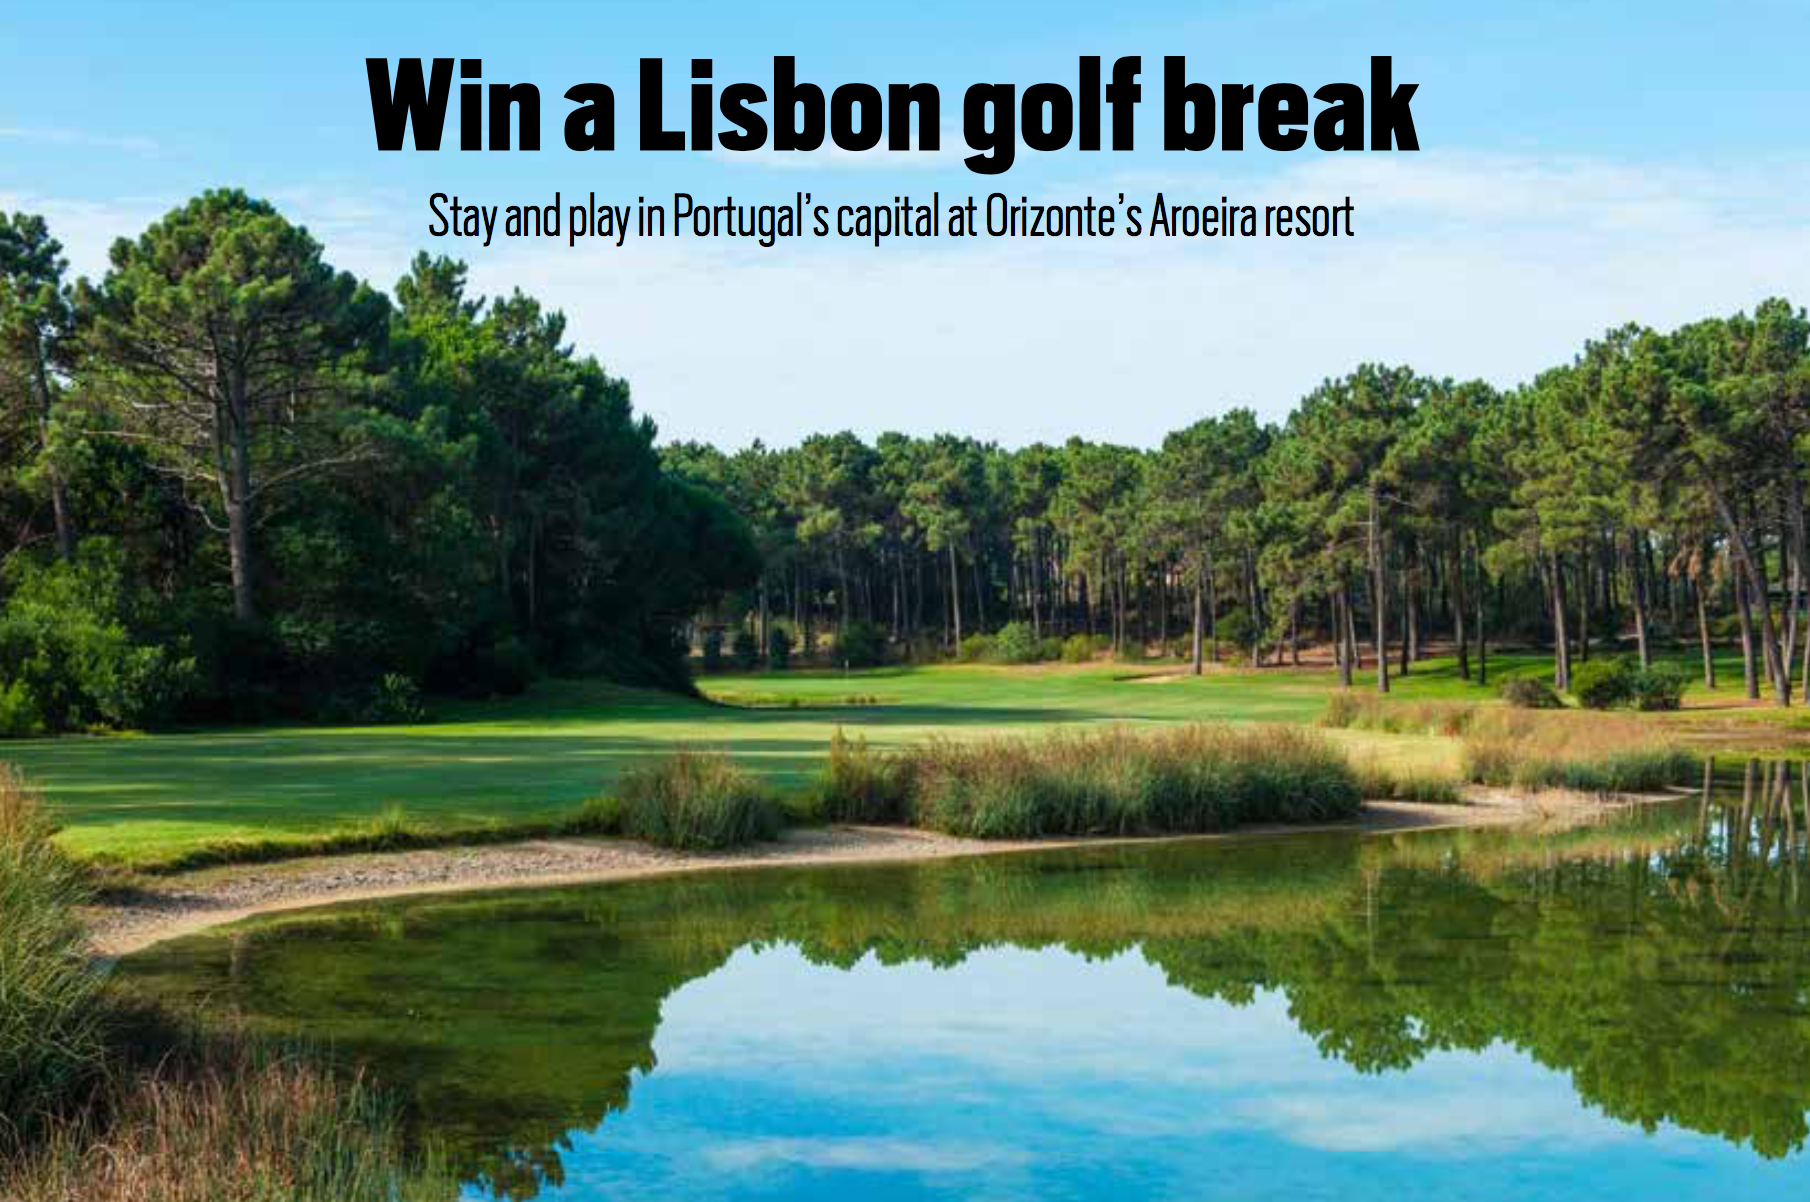 Win A Lisbon Golf Break sweepstakes